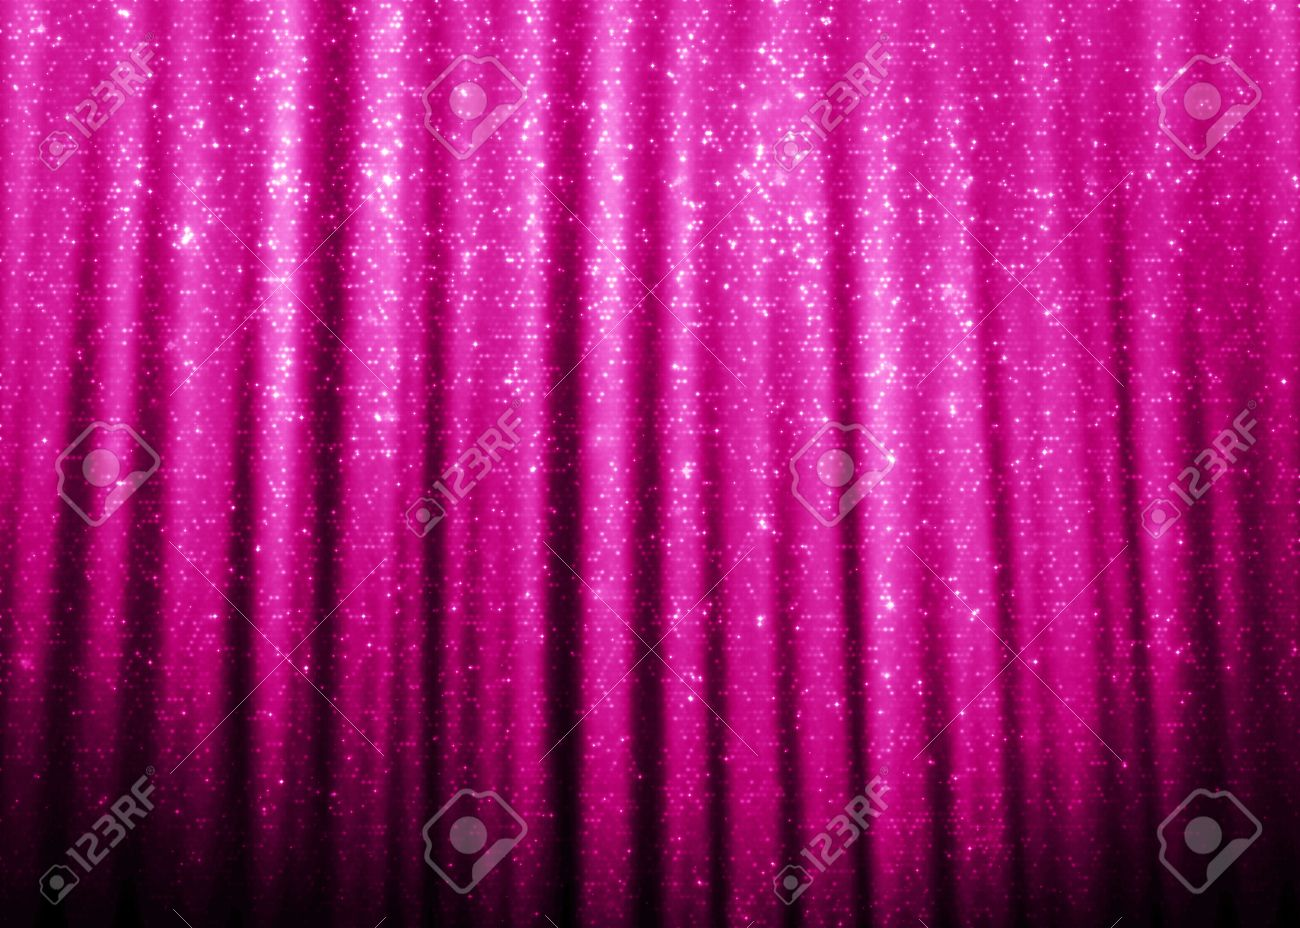 Pink Sequin Curtains Pink Sparkle Glitter Curtains Background